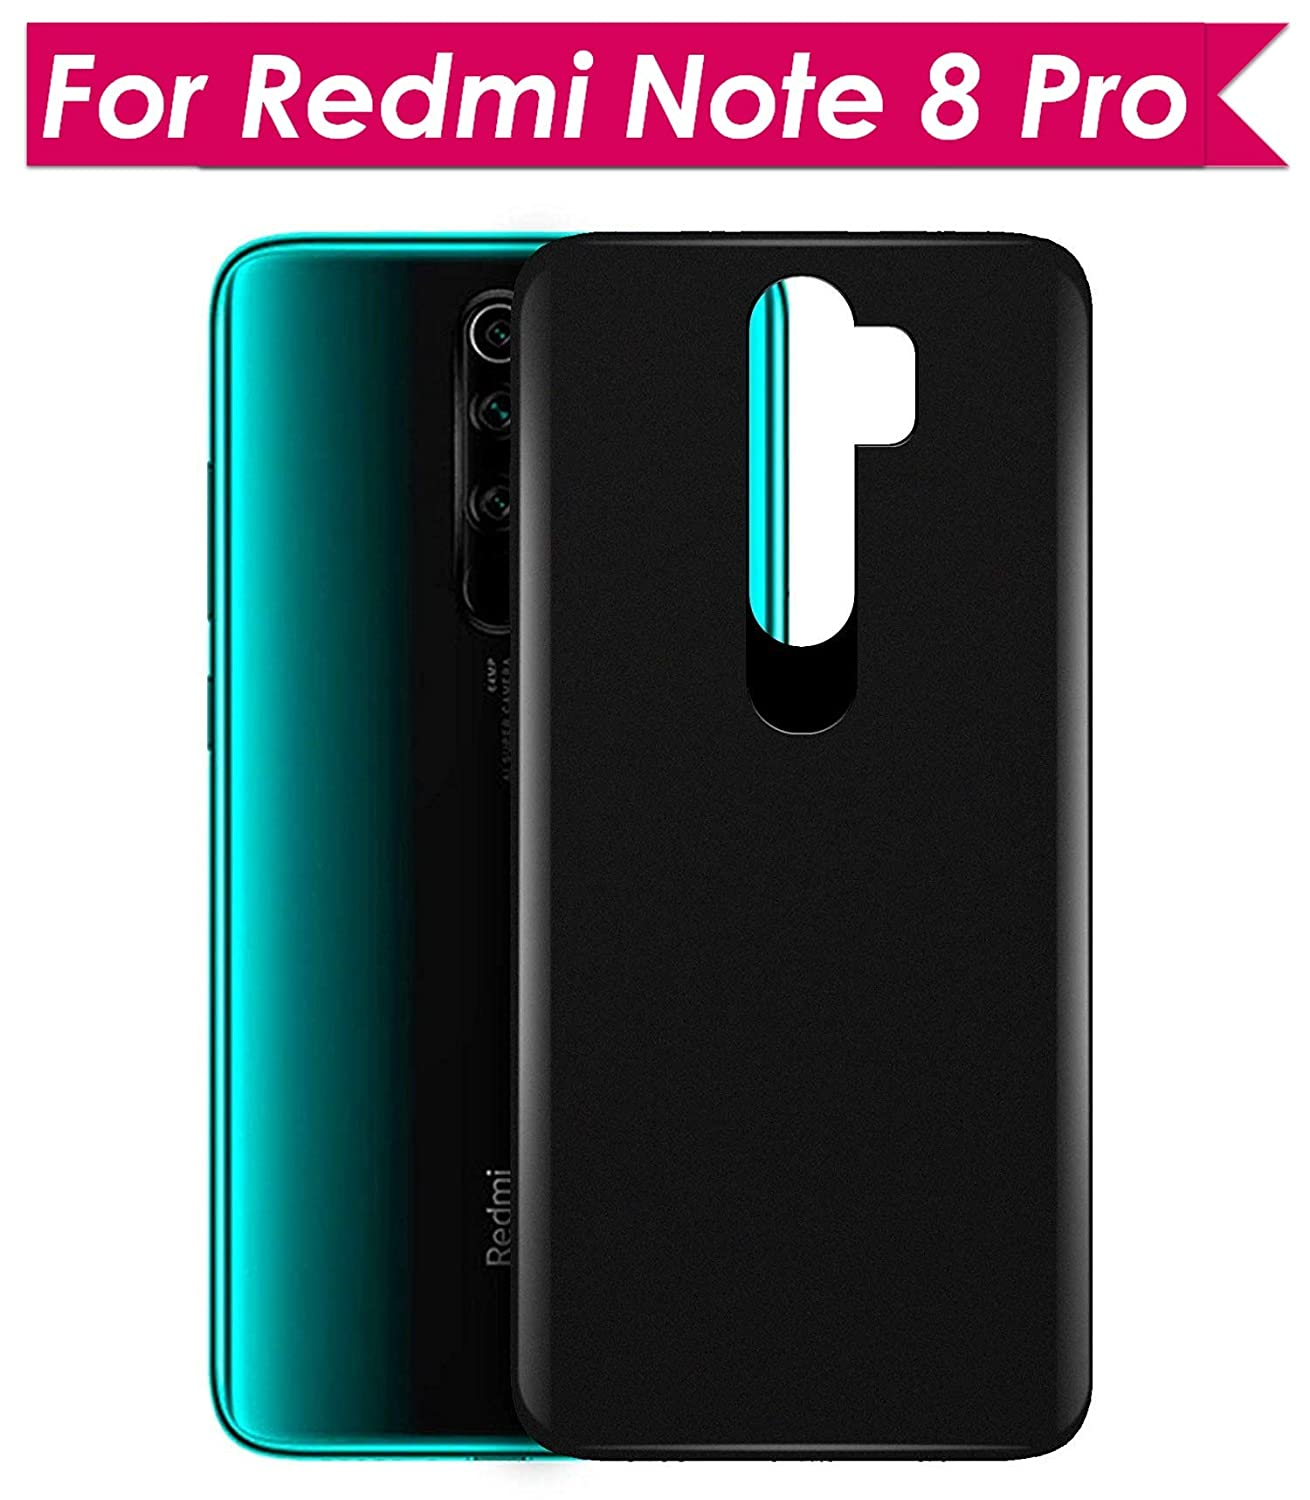 """WOW Imagine Ultra Slim Flexible Back Cover Case for Redmi Note 8 Pro